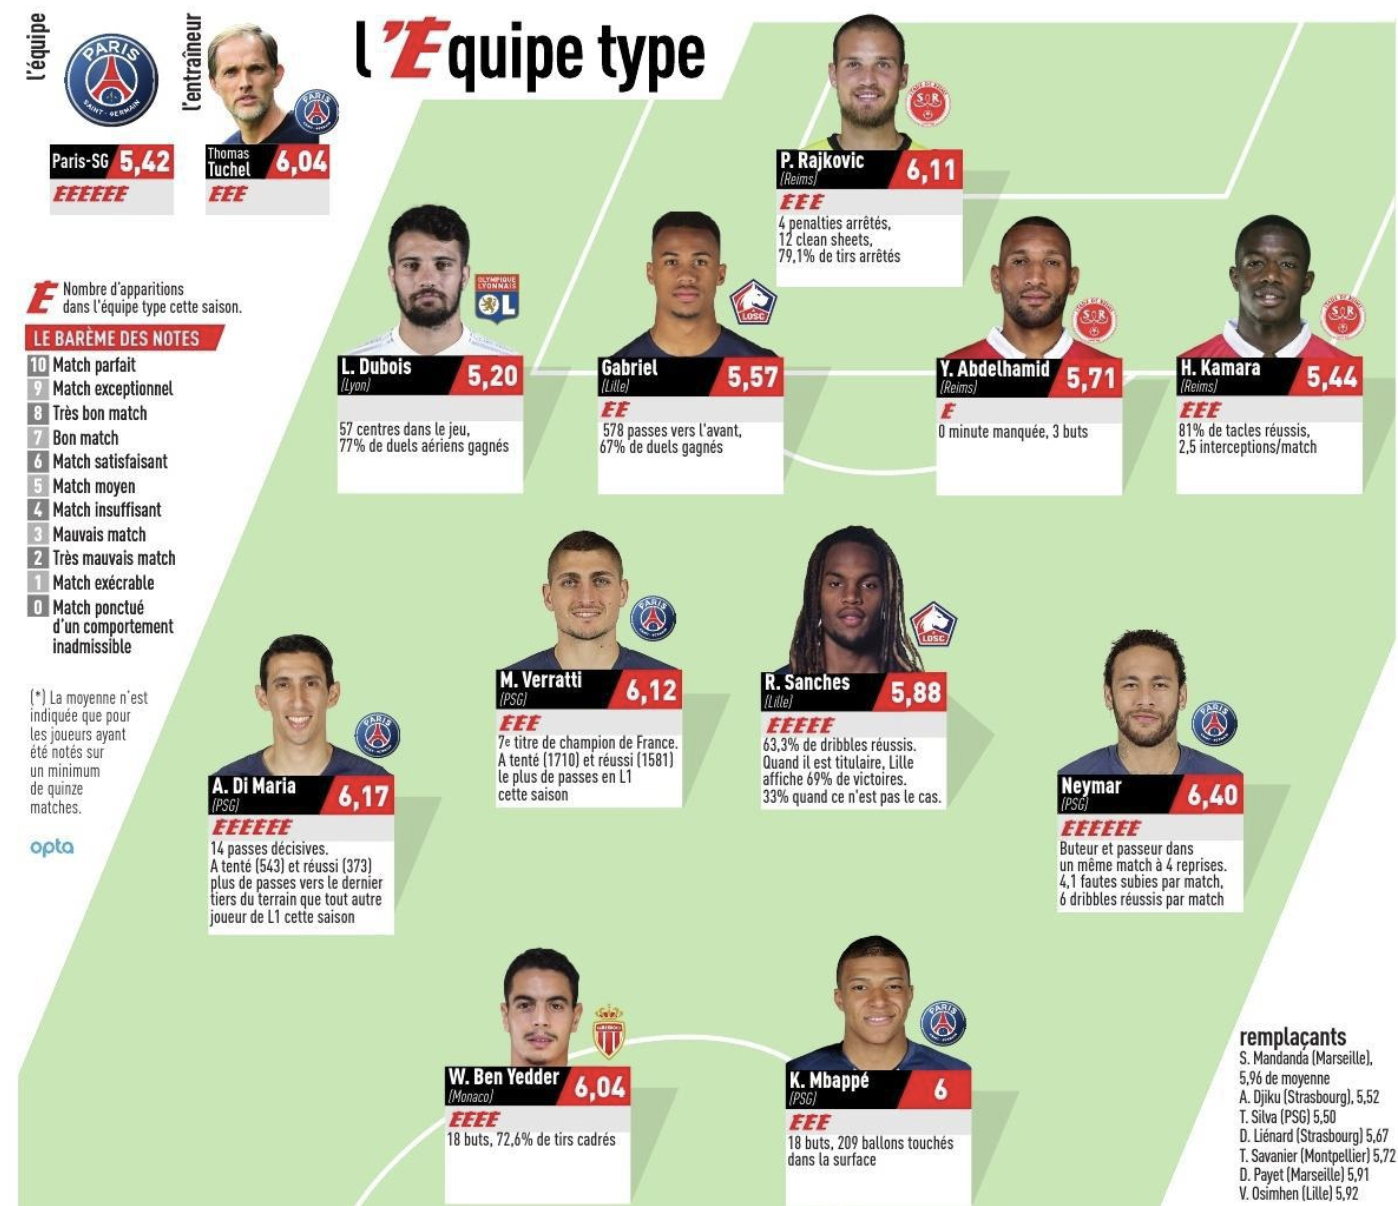 equipe-type-20.png (1.33 MB)